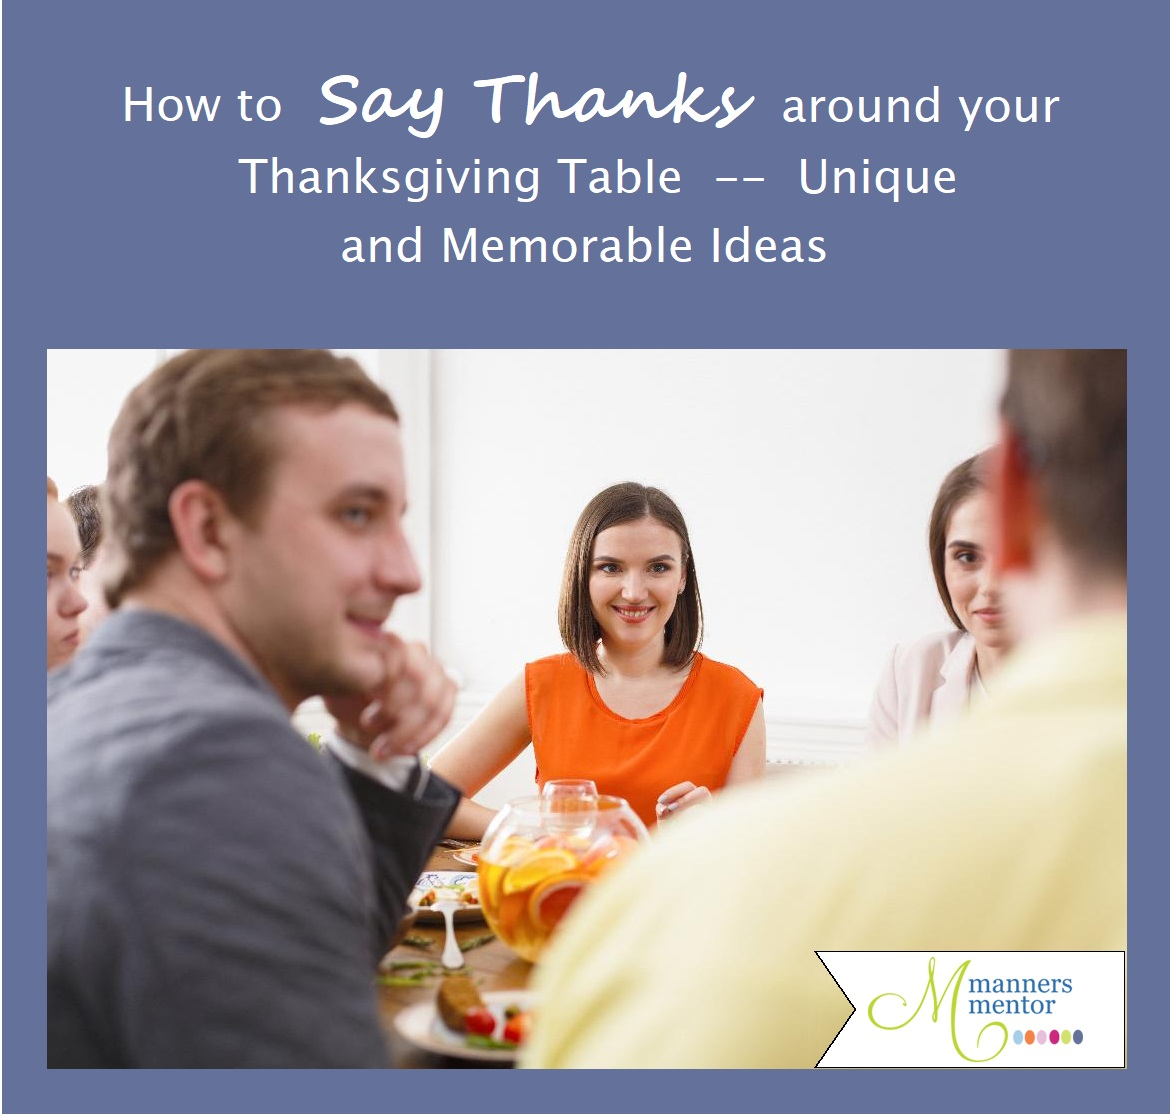 Say It Creative Personalized Shop: How To Say Thanks Around Your Thanksgiving Table